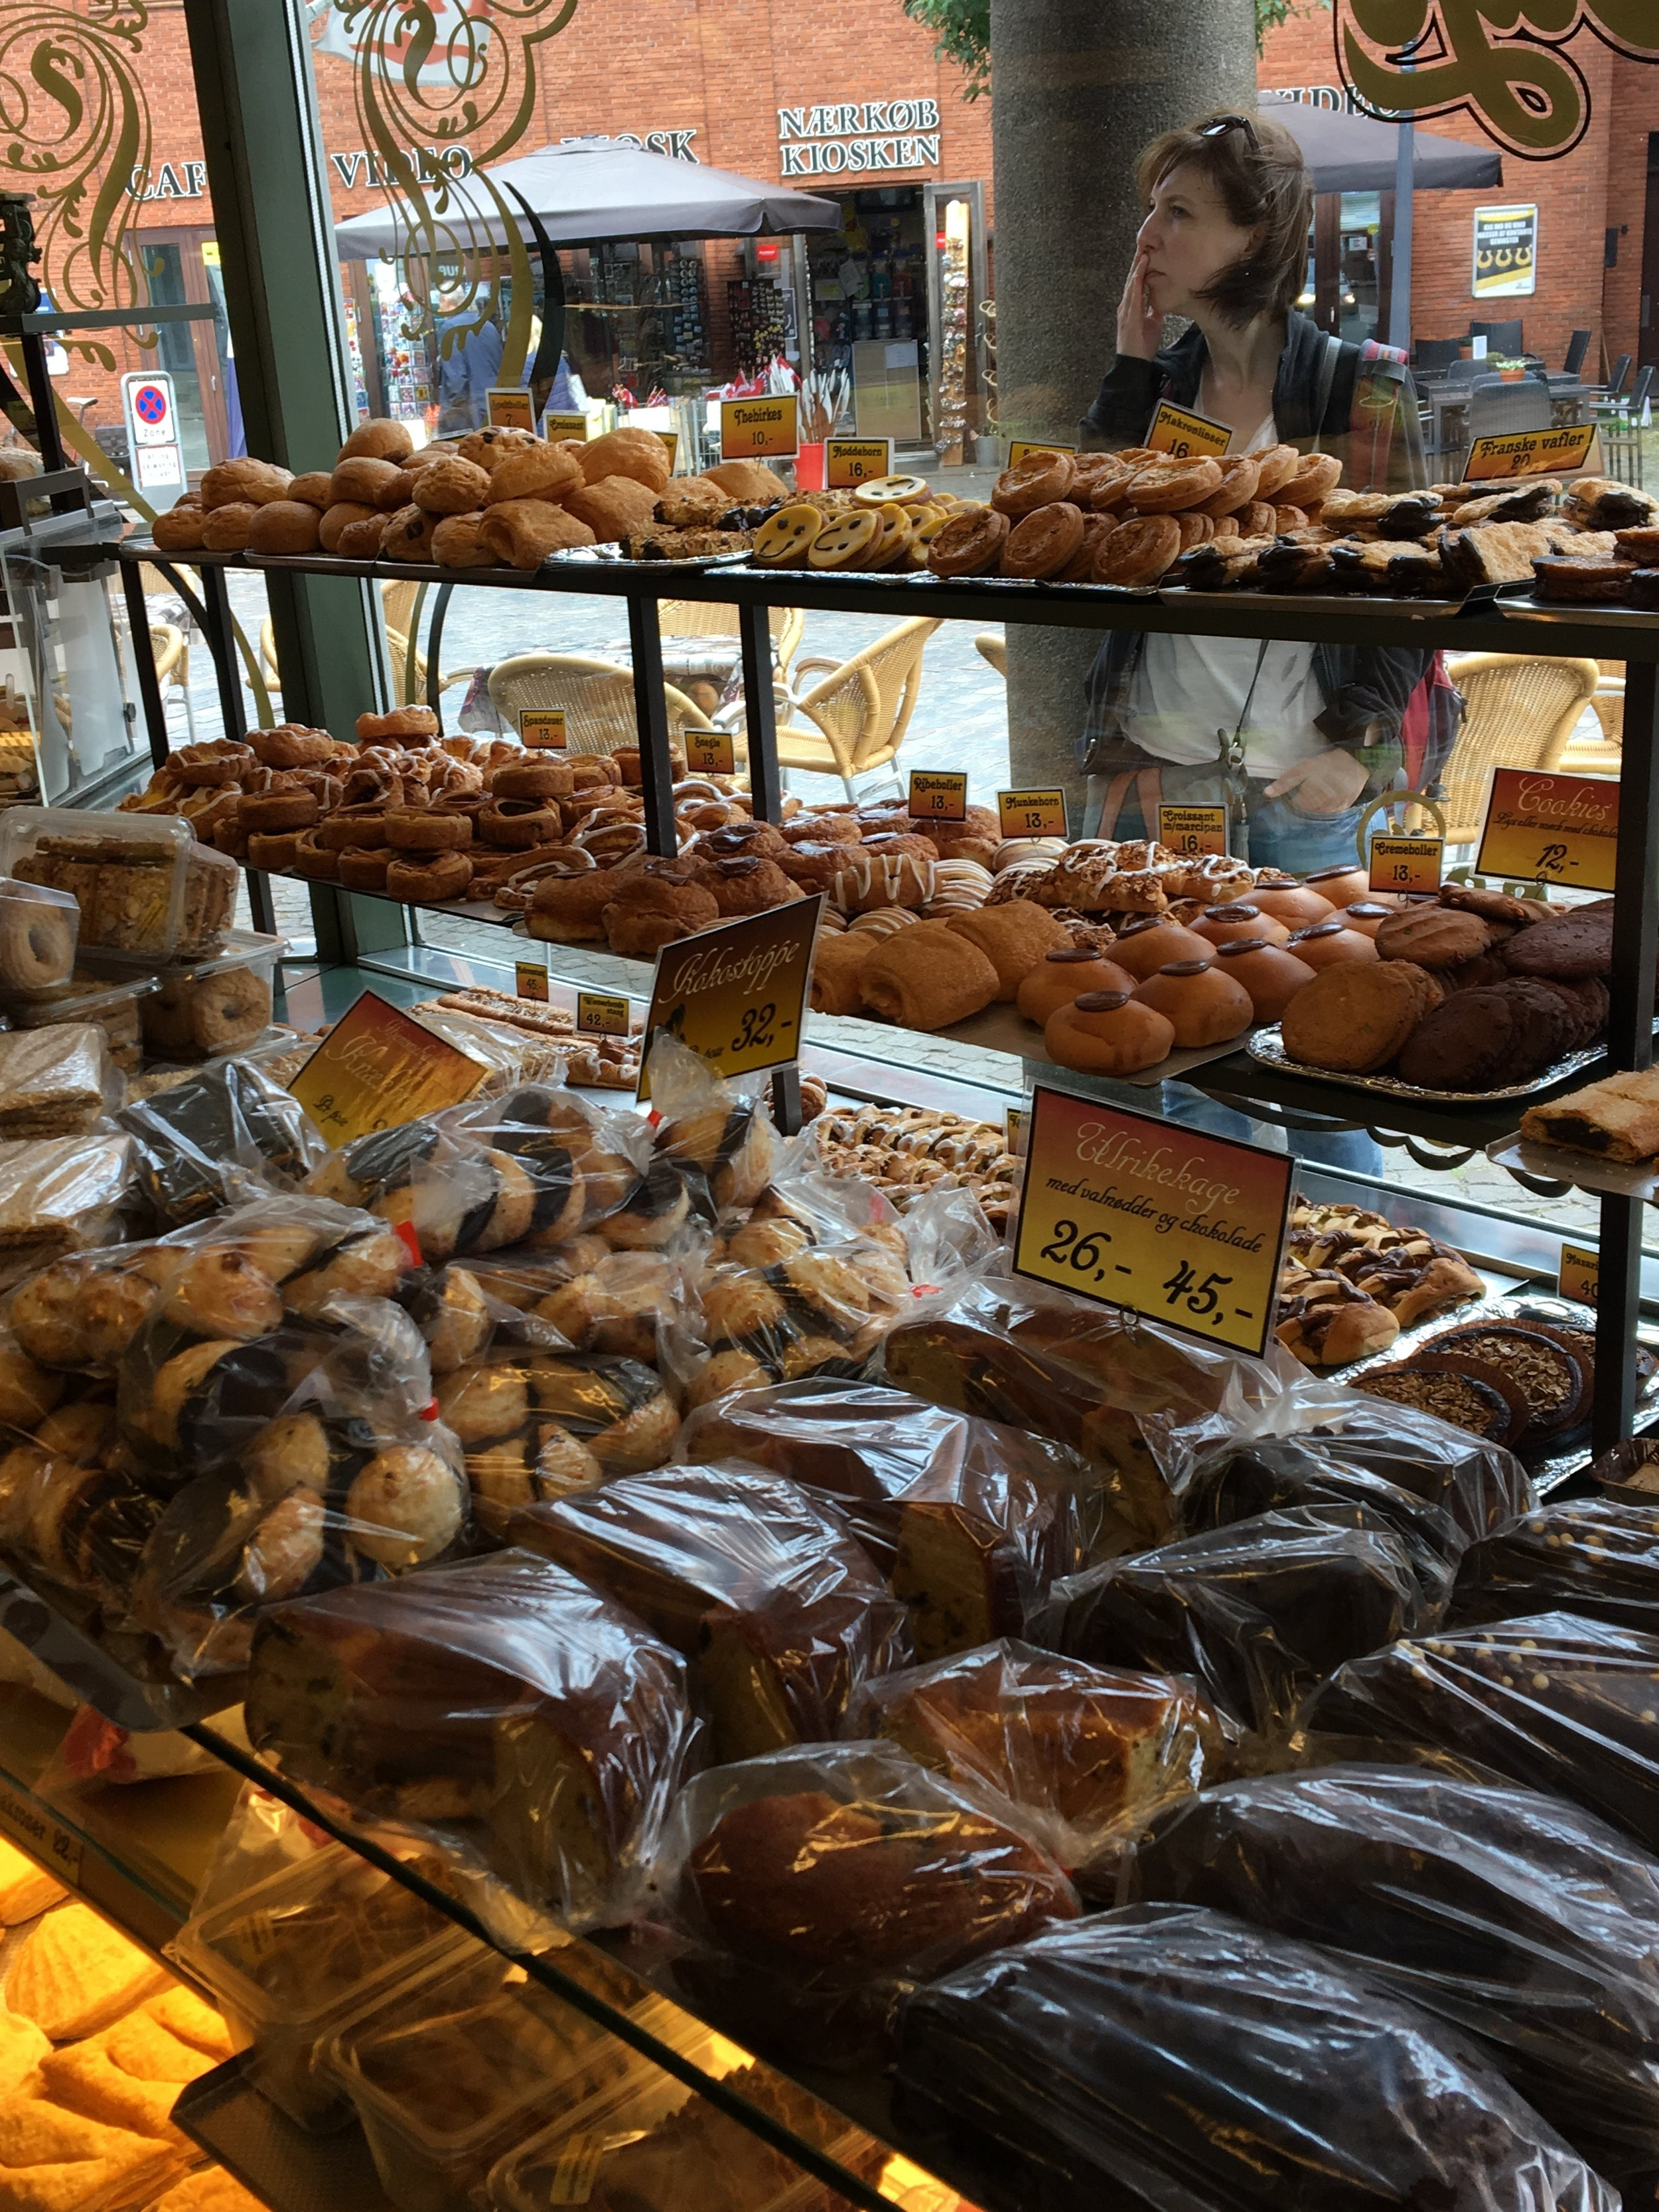 European bakeries put US ones to shame.. Every town had several, all were reasonably priced, and had tons of items I hadn't even seen before.